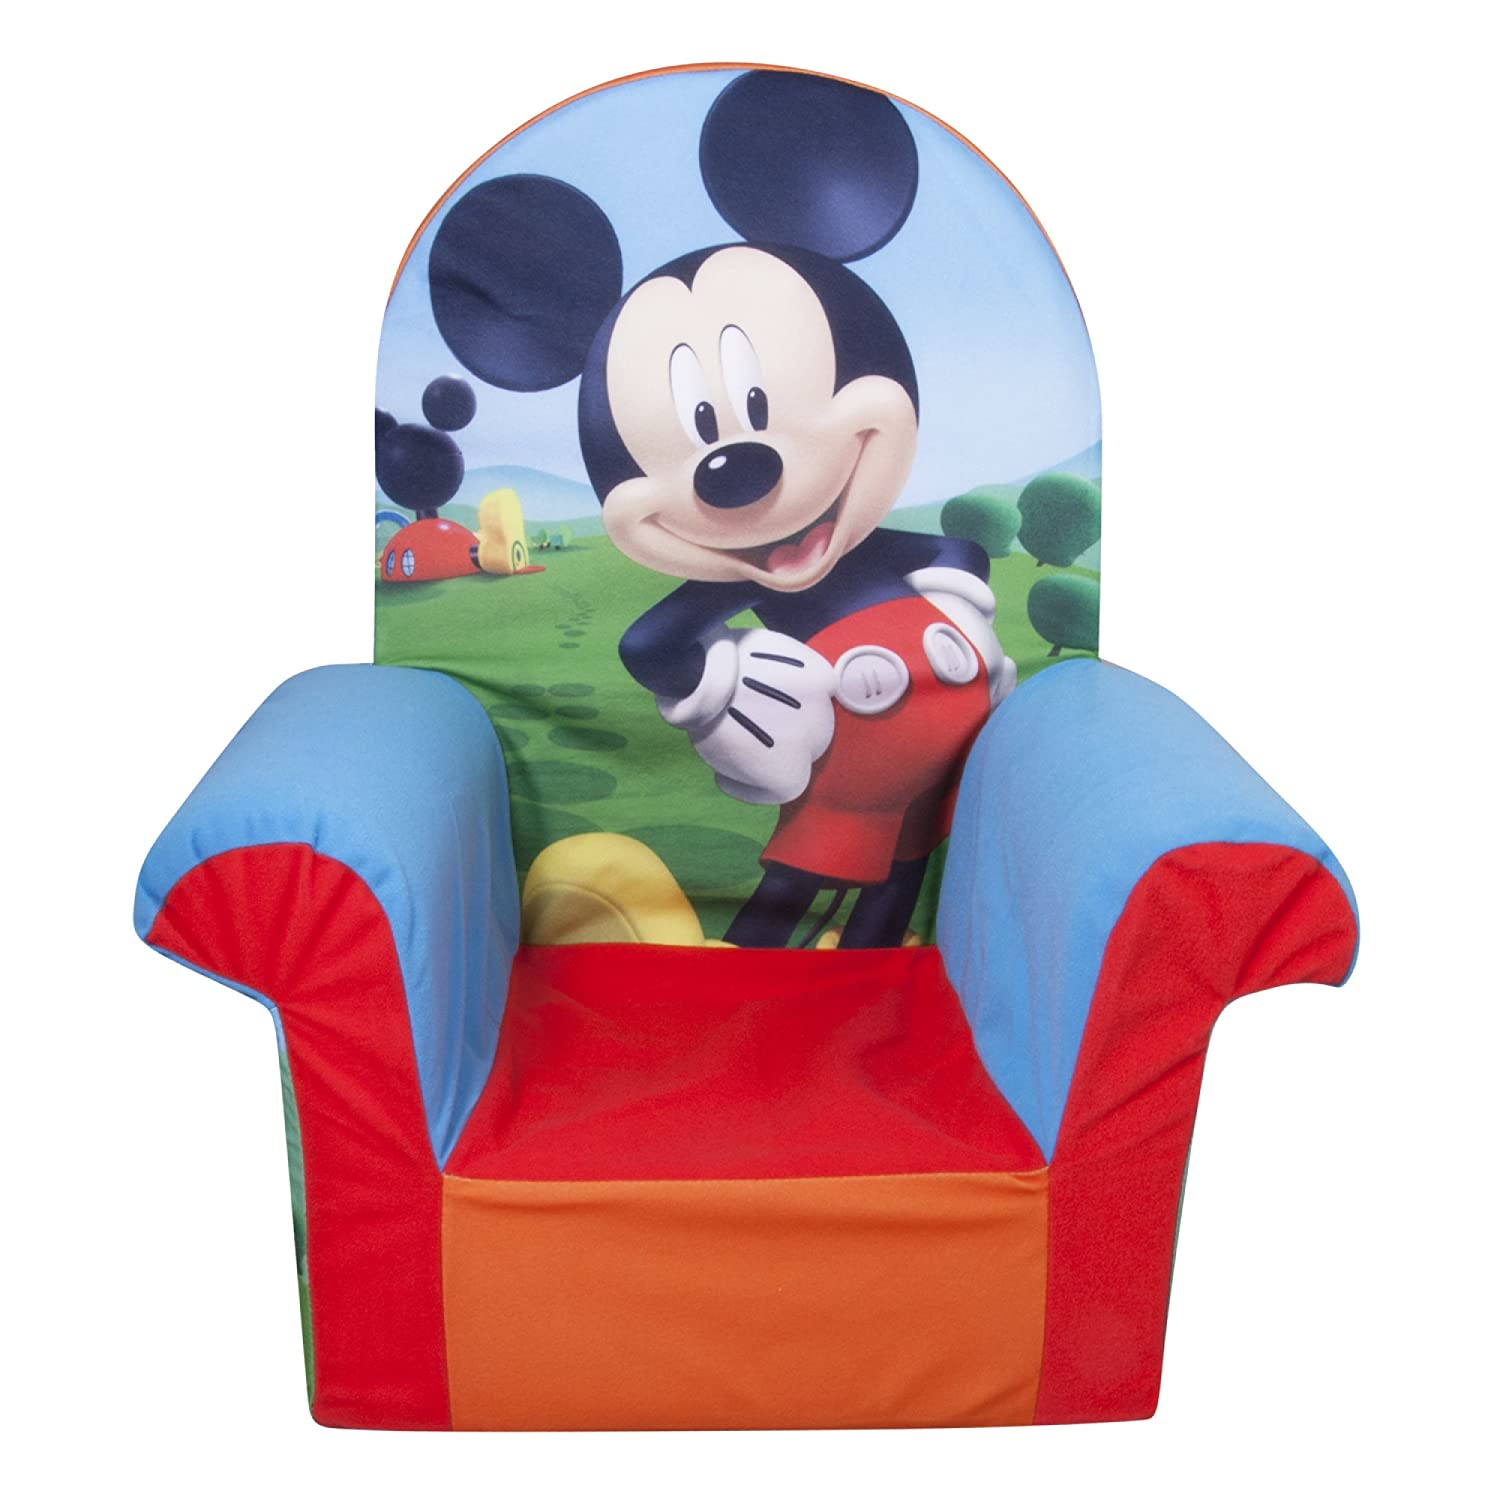 Marshmallow Furniture, Children's Upholstered High Back Chair, Disney Mickey Mouse Clubhouse, by Spin Master 6021858